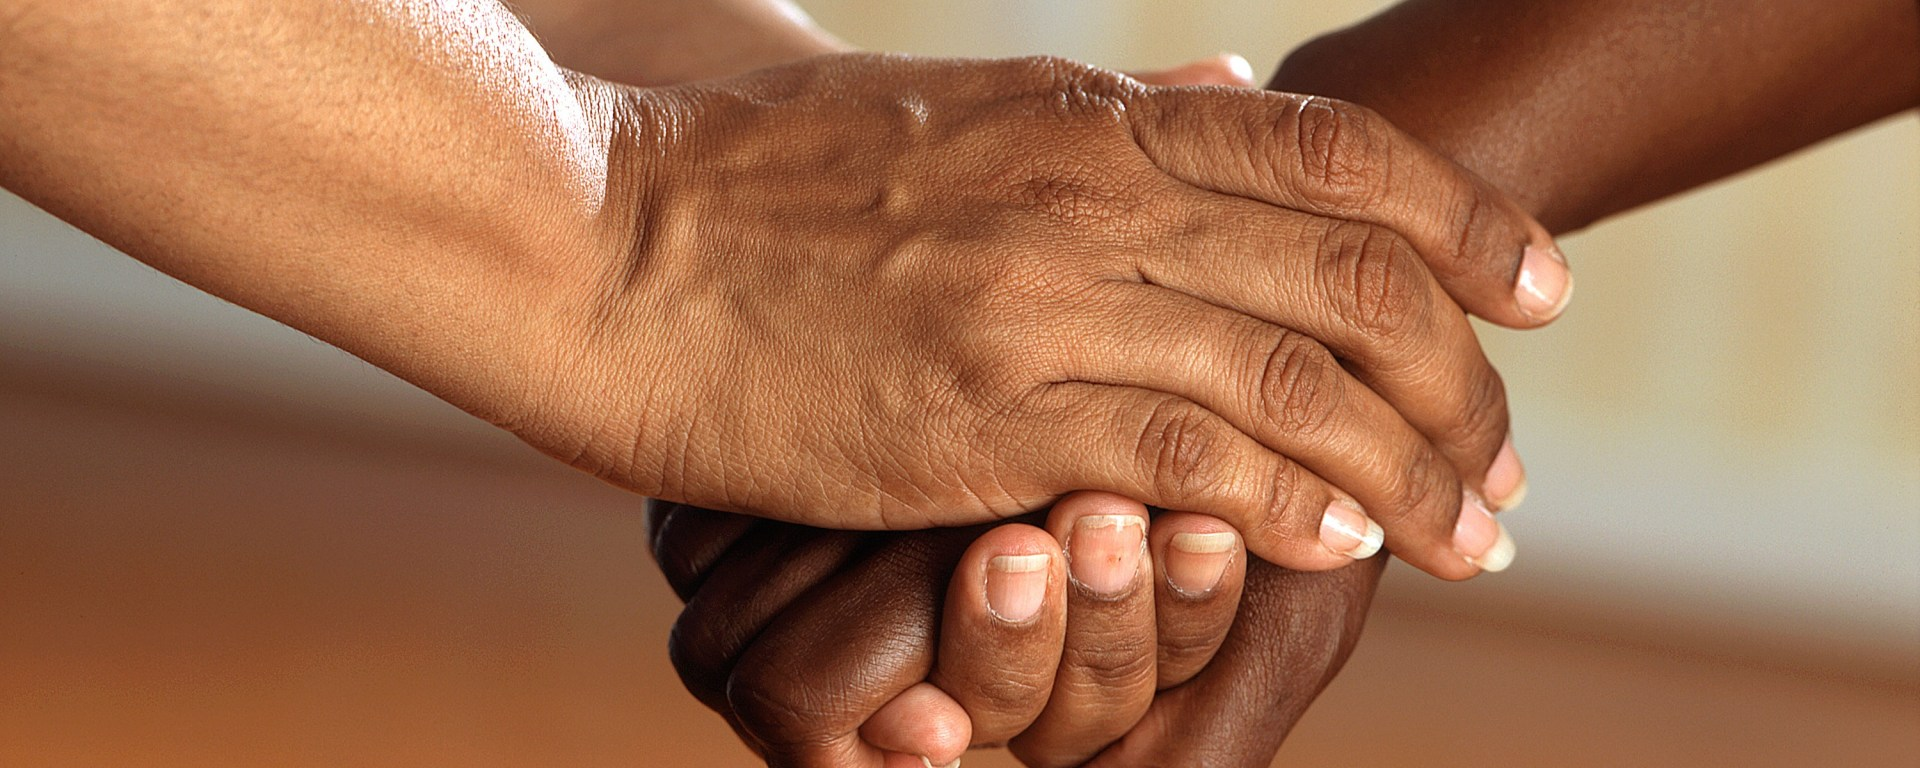 Two people clasping hands.